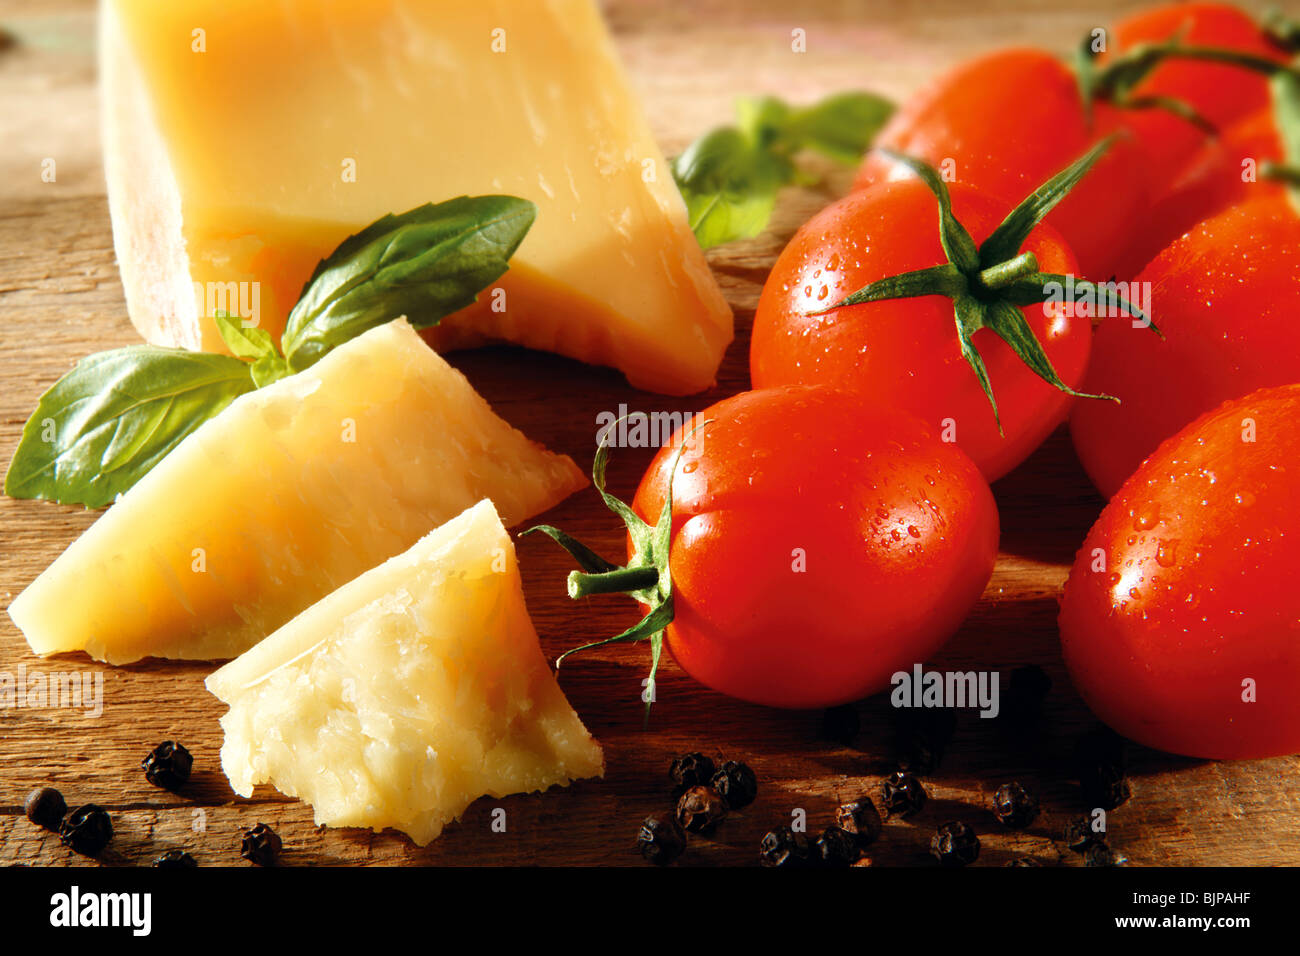 Cheddar cheese and fresh tomatoes food photos. - Stock Image